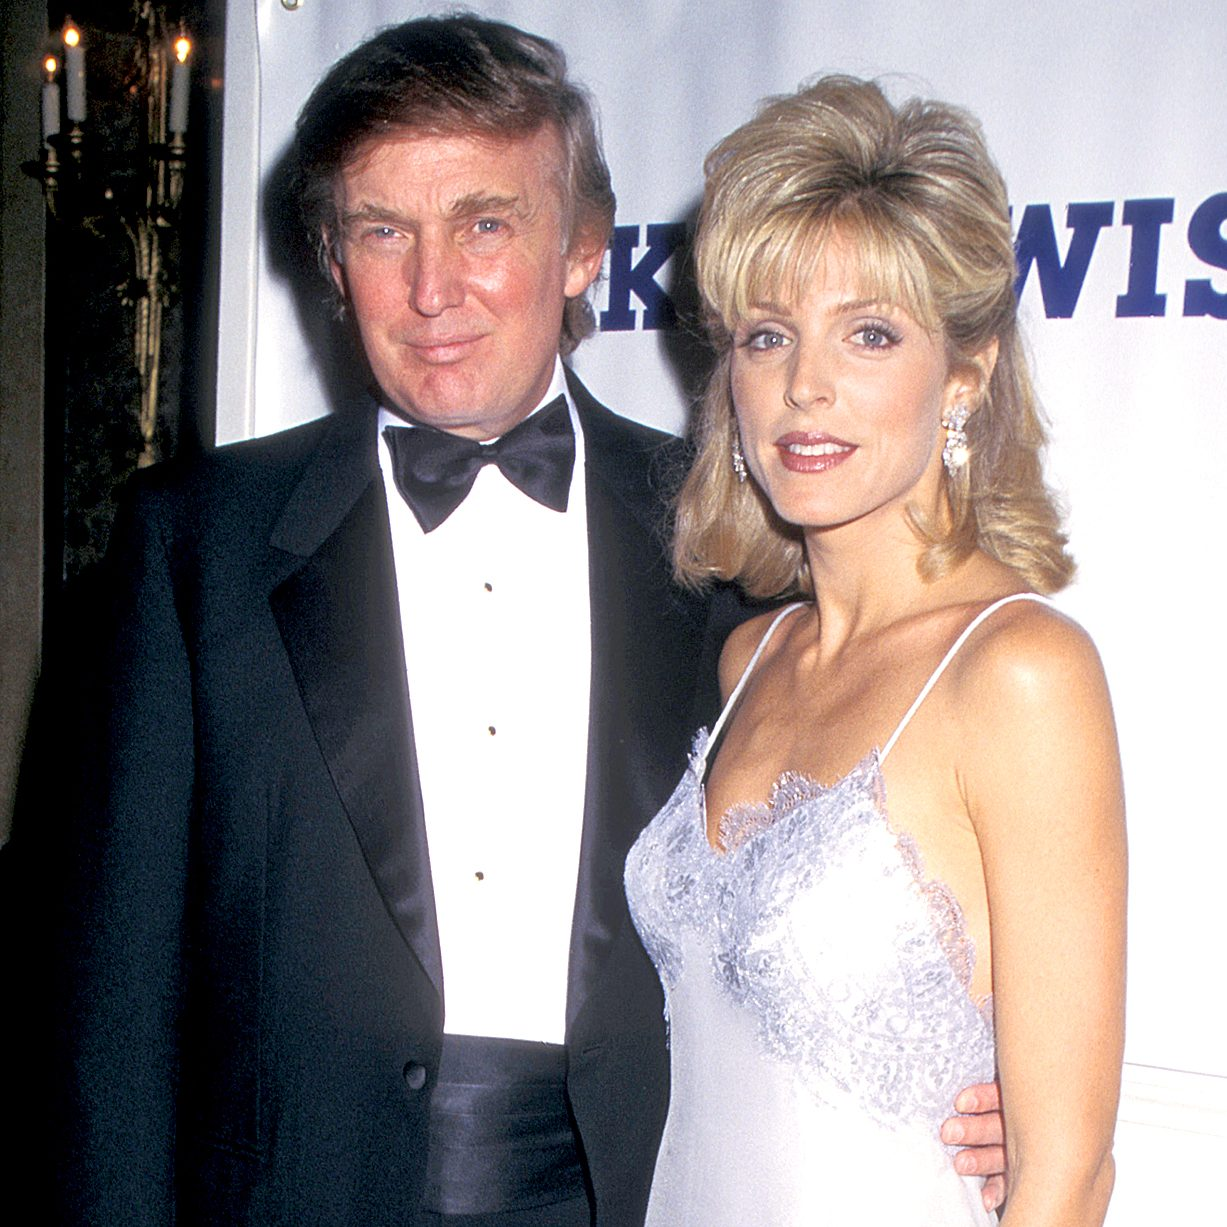 donald trump marla maples inline f3d689d6 2966 4afb a5e3 fcd857ac23ab e1576163748336 20 Oscar-Worthy Facts About Scent Of A Woman